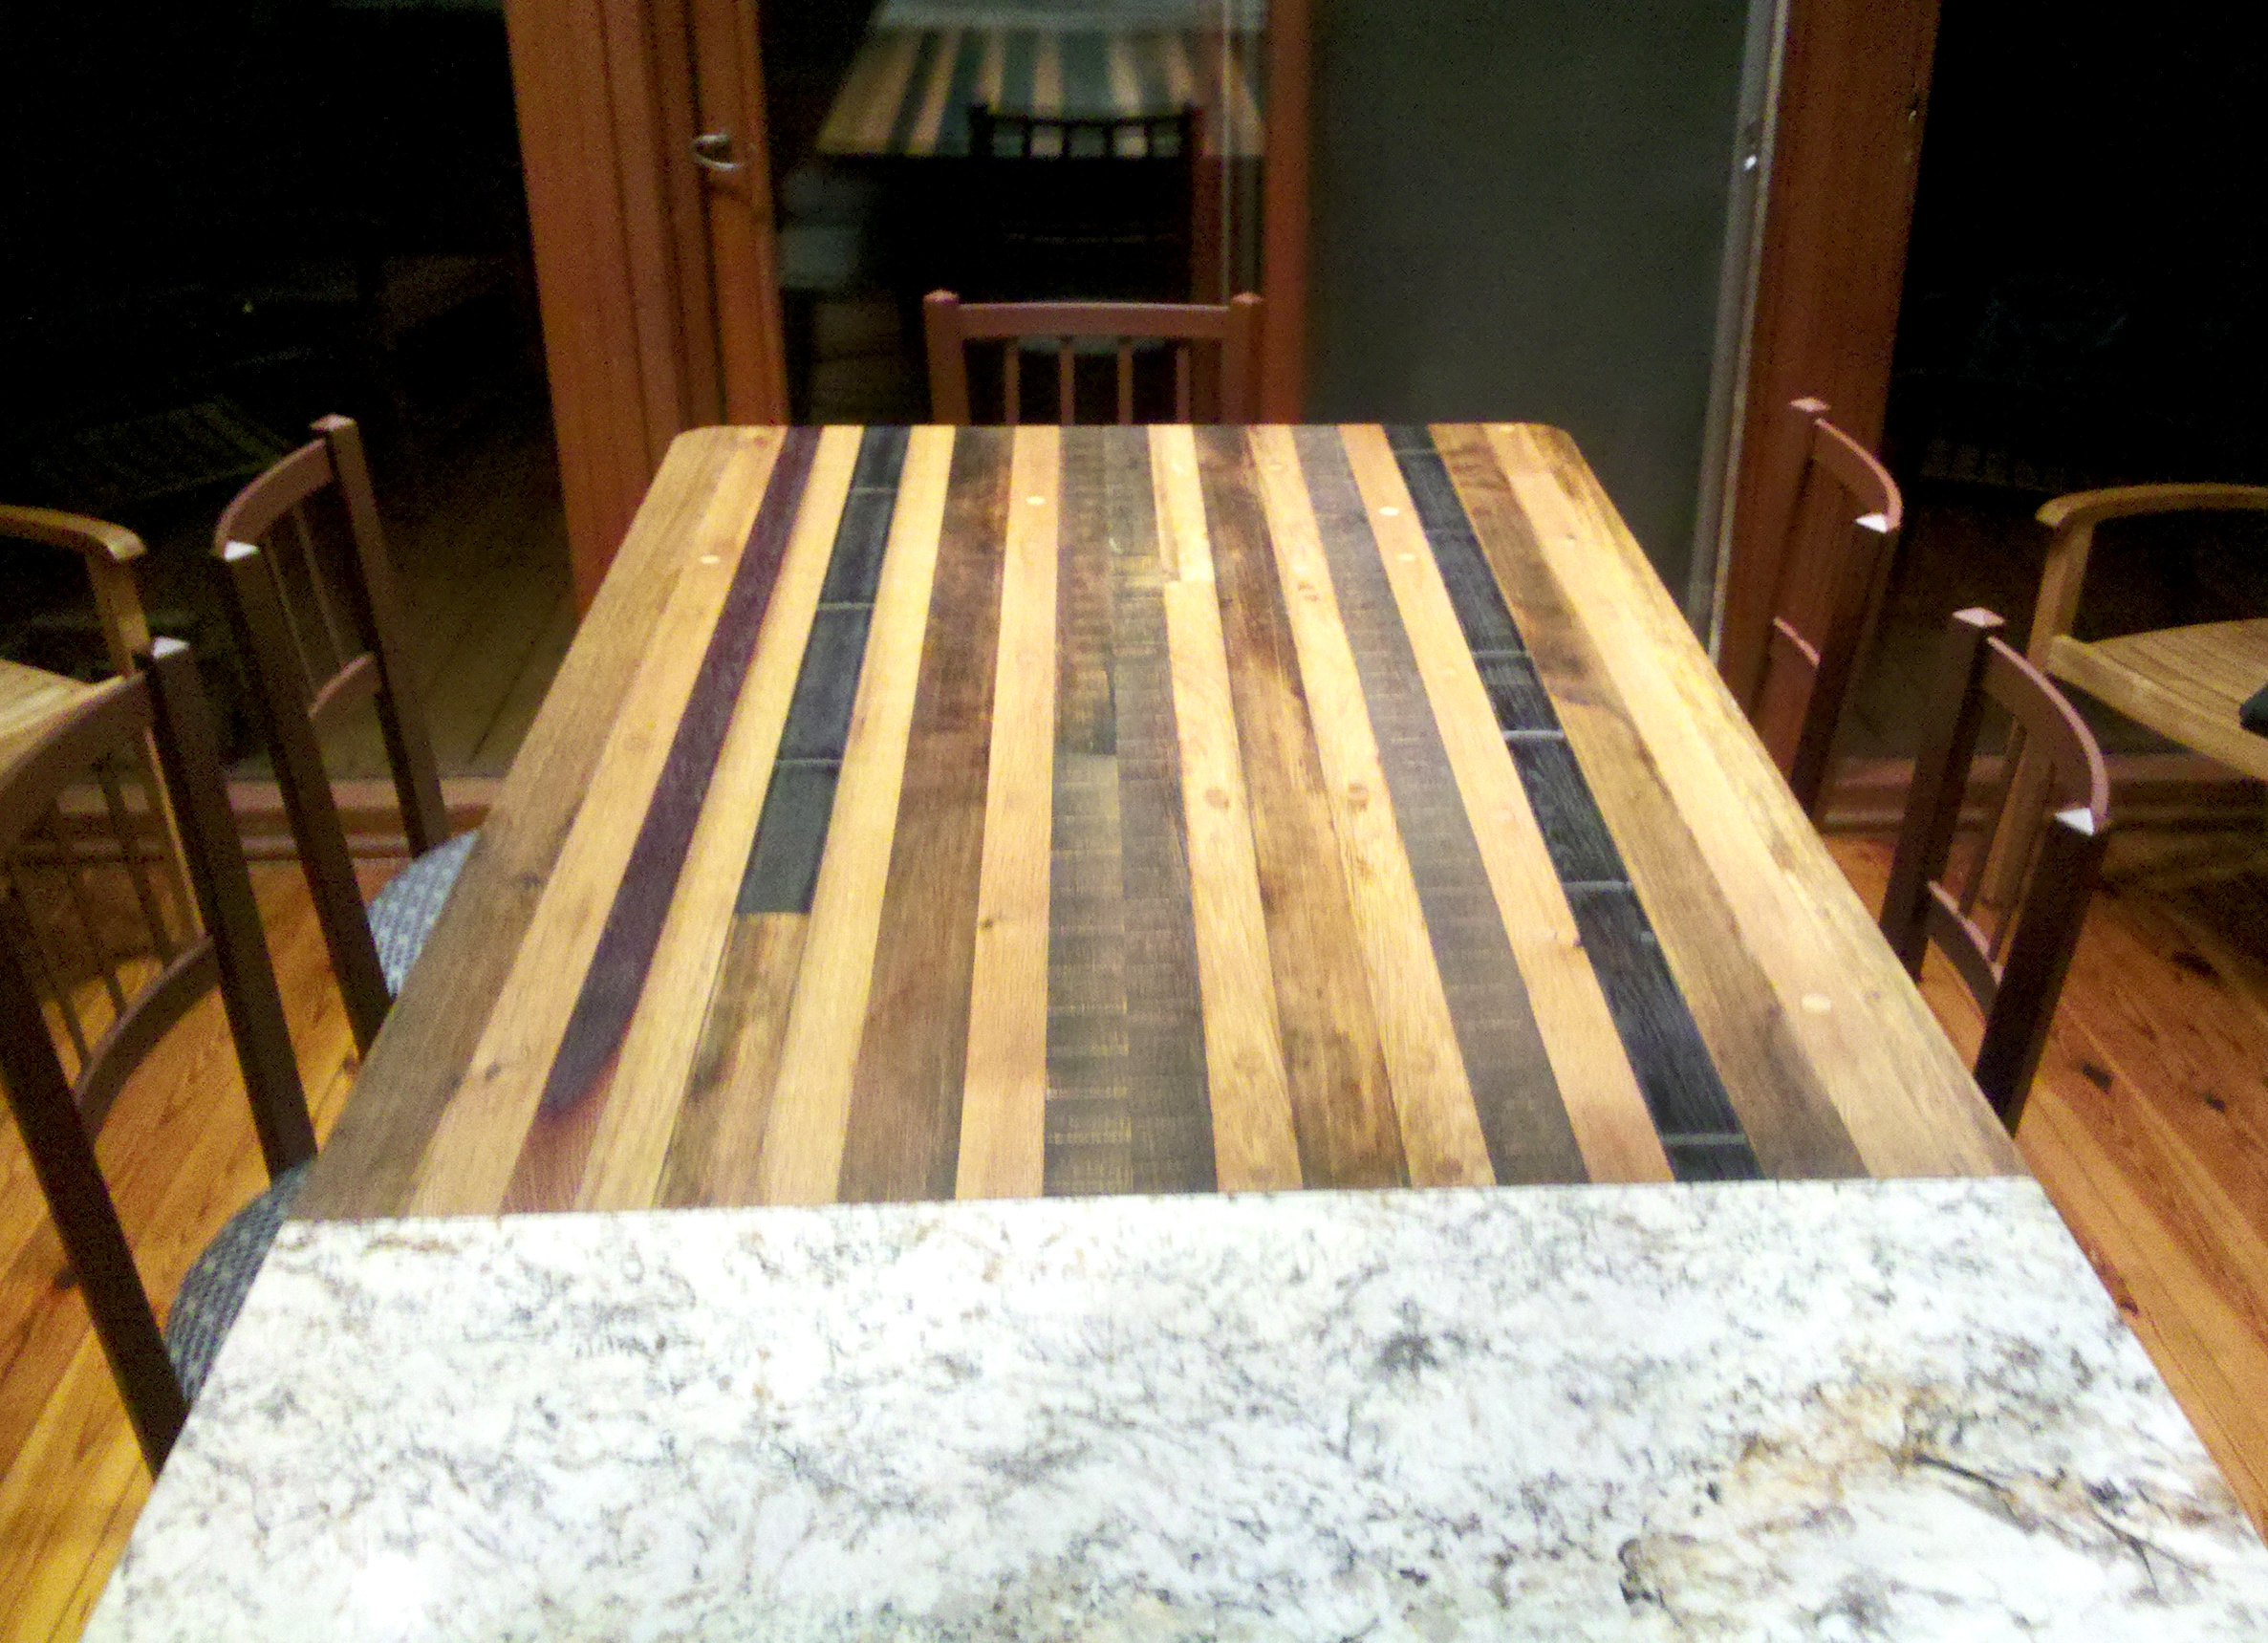 Old French white oak and domestic barrel/vat stave were repurposed into a dining table for Mathew's family meals.